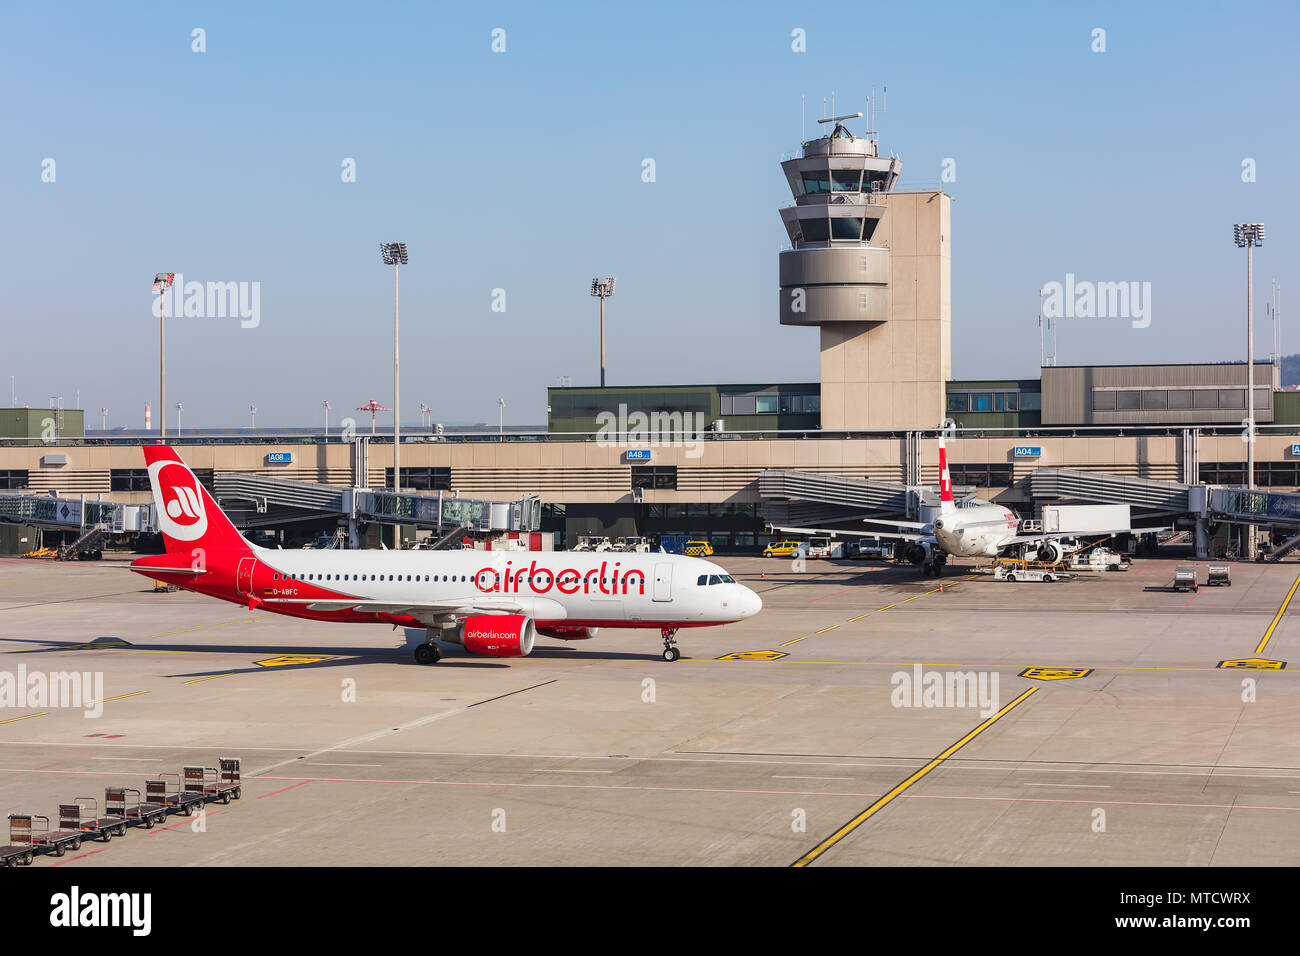 An Airbus A320-214 of Air Berlin taxiing at Zurich airport. - Stock Image